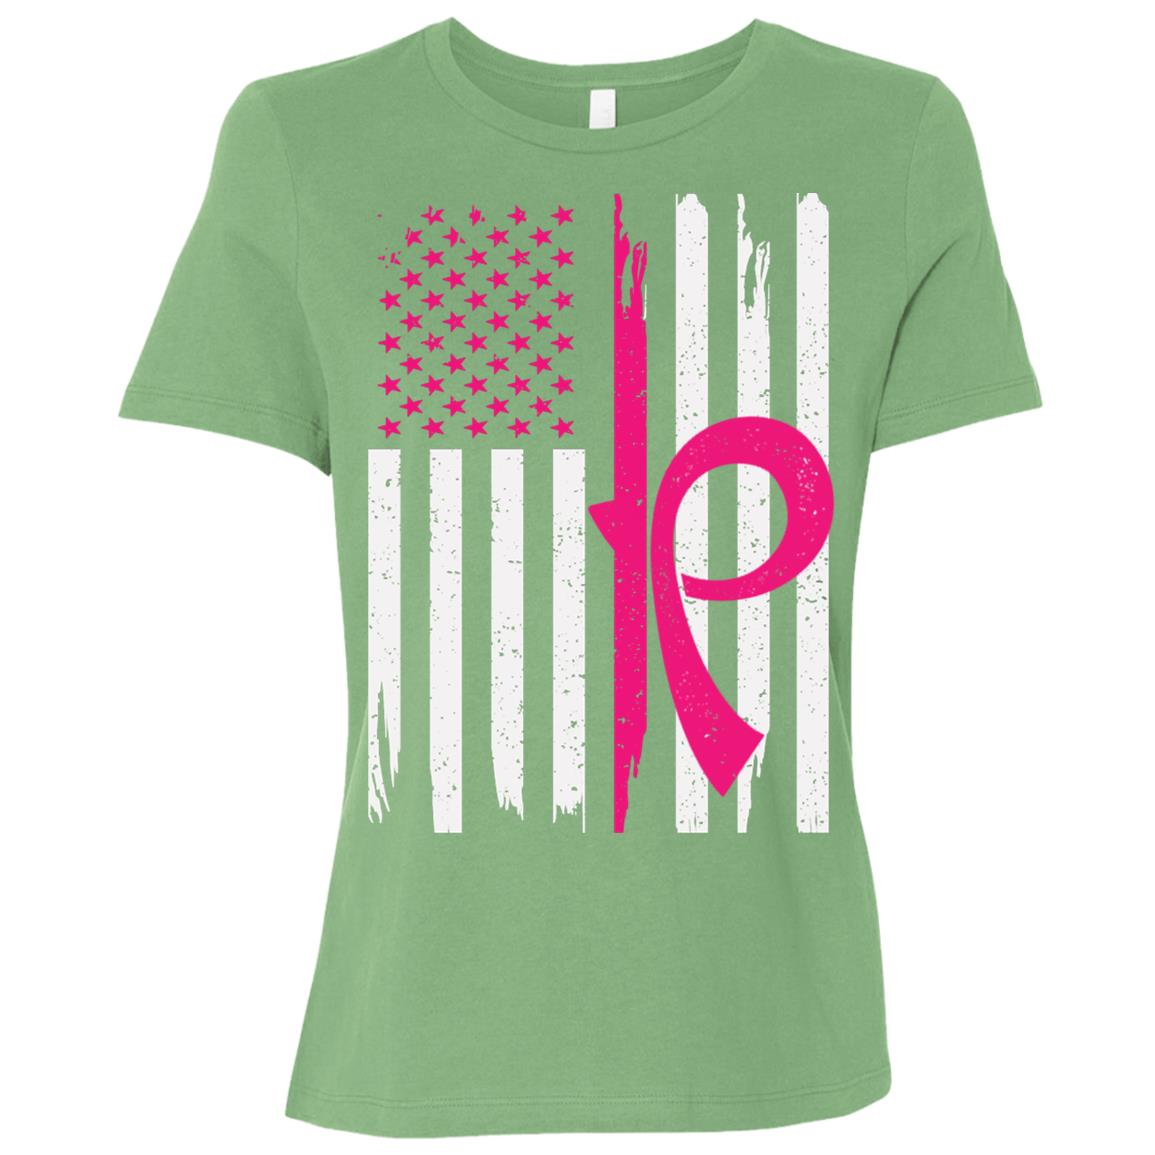 Men's American Flag Breast Cancer Awareness-2 Women Short Sleeve T-Shirt